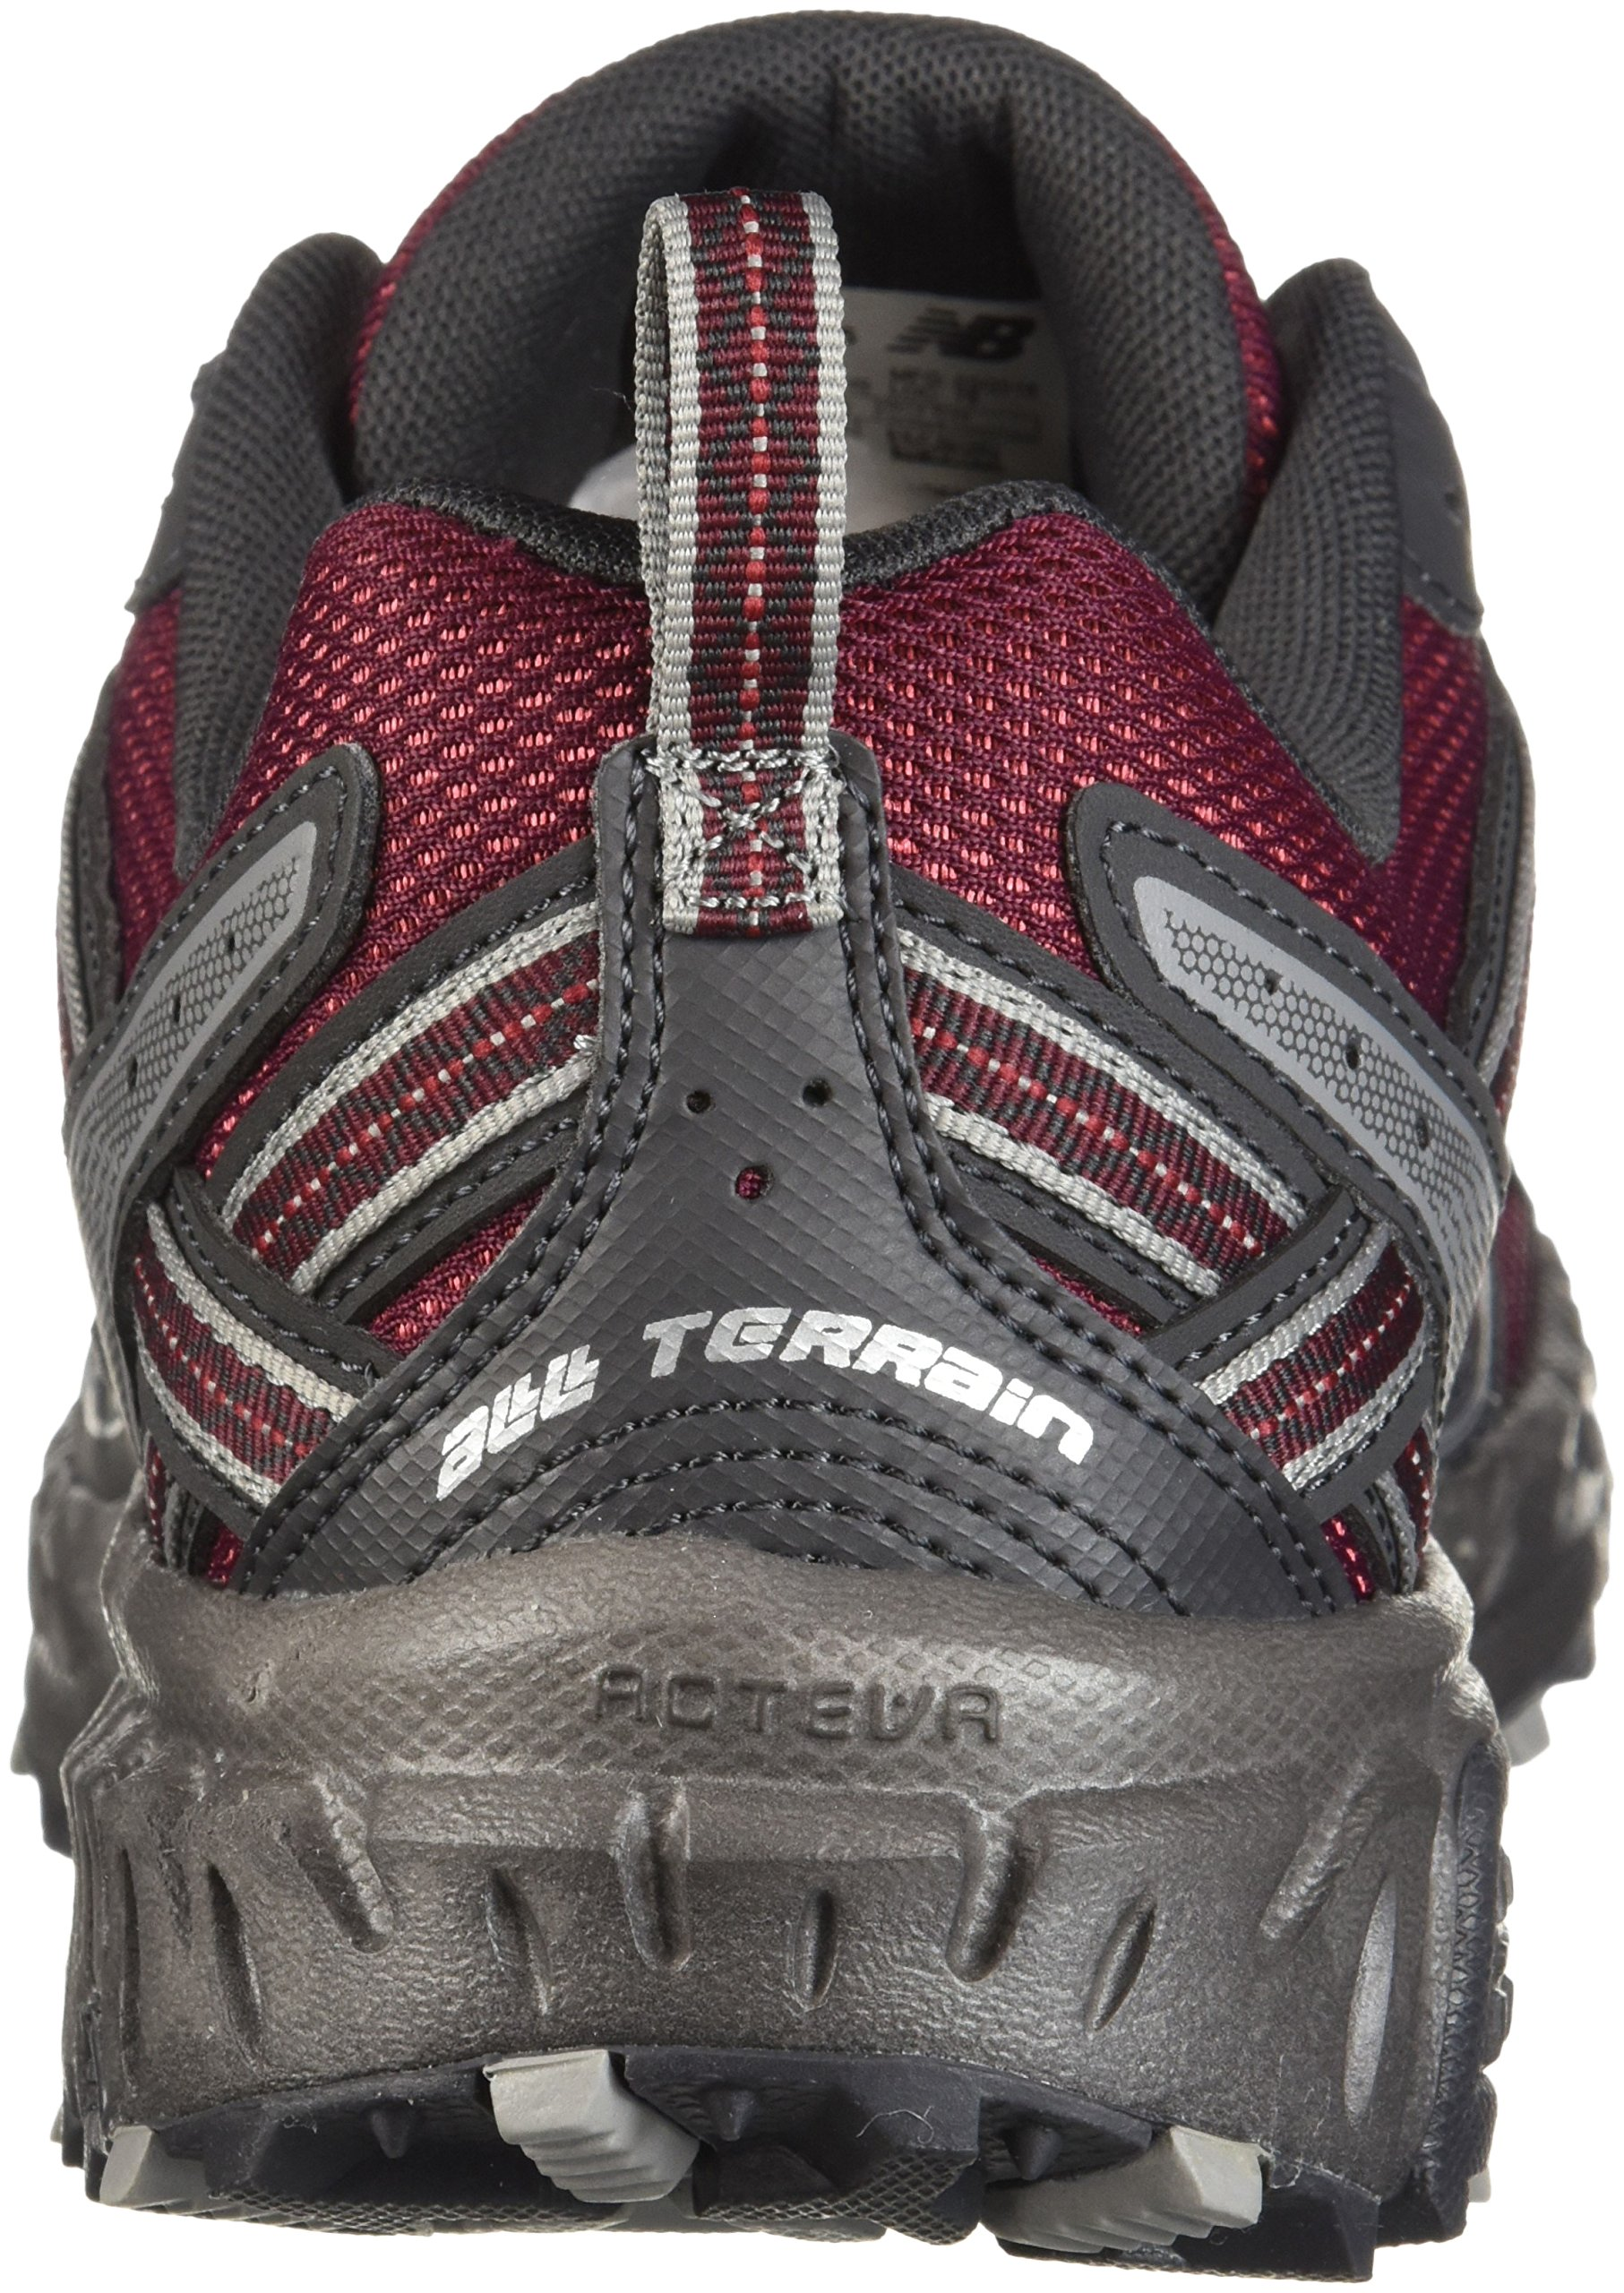 New Balance Men's MT410v5 Cushioning Trail Running Shoe, Oxblood, 7 D US by New Balance (Image #2)